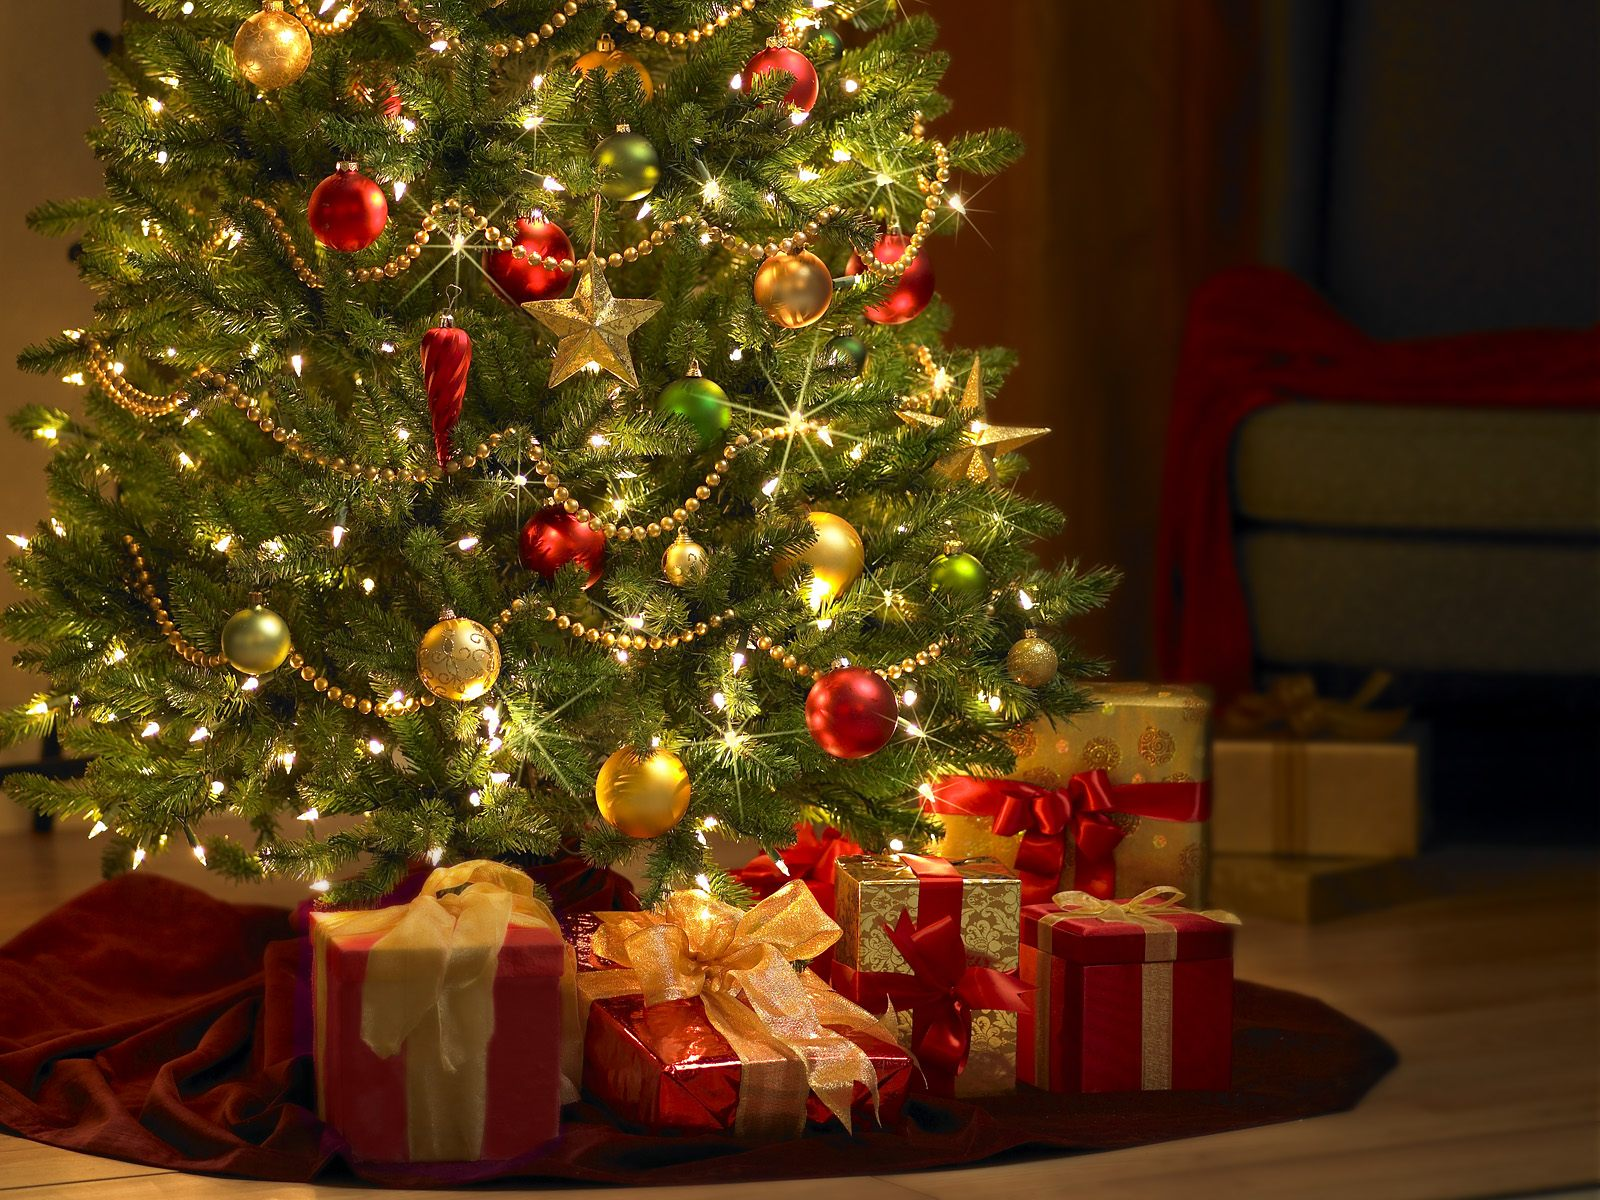 Christmas Wallpapers and Images and Photos hd christmas tree